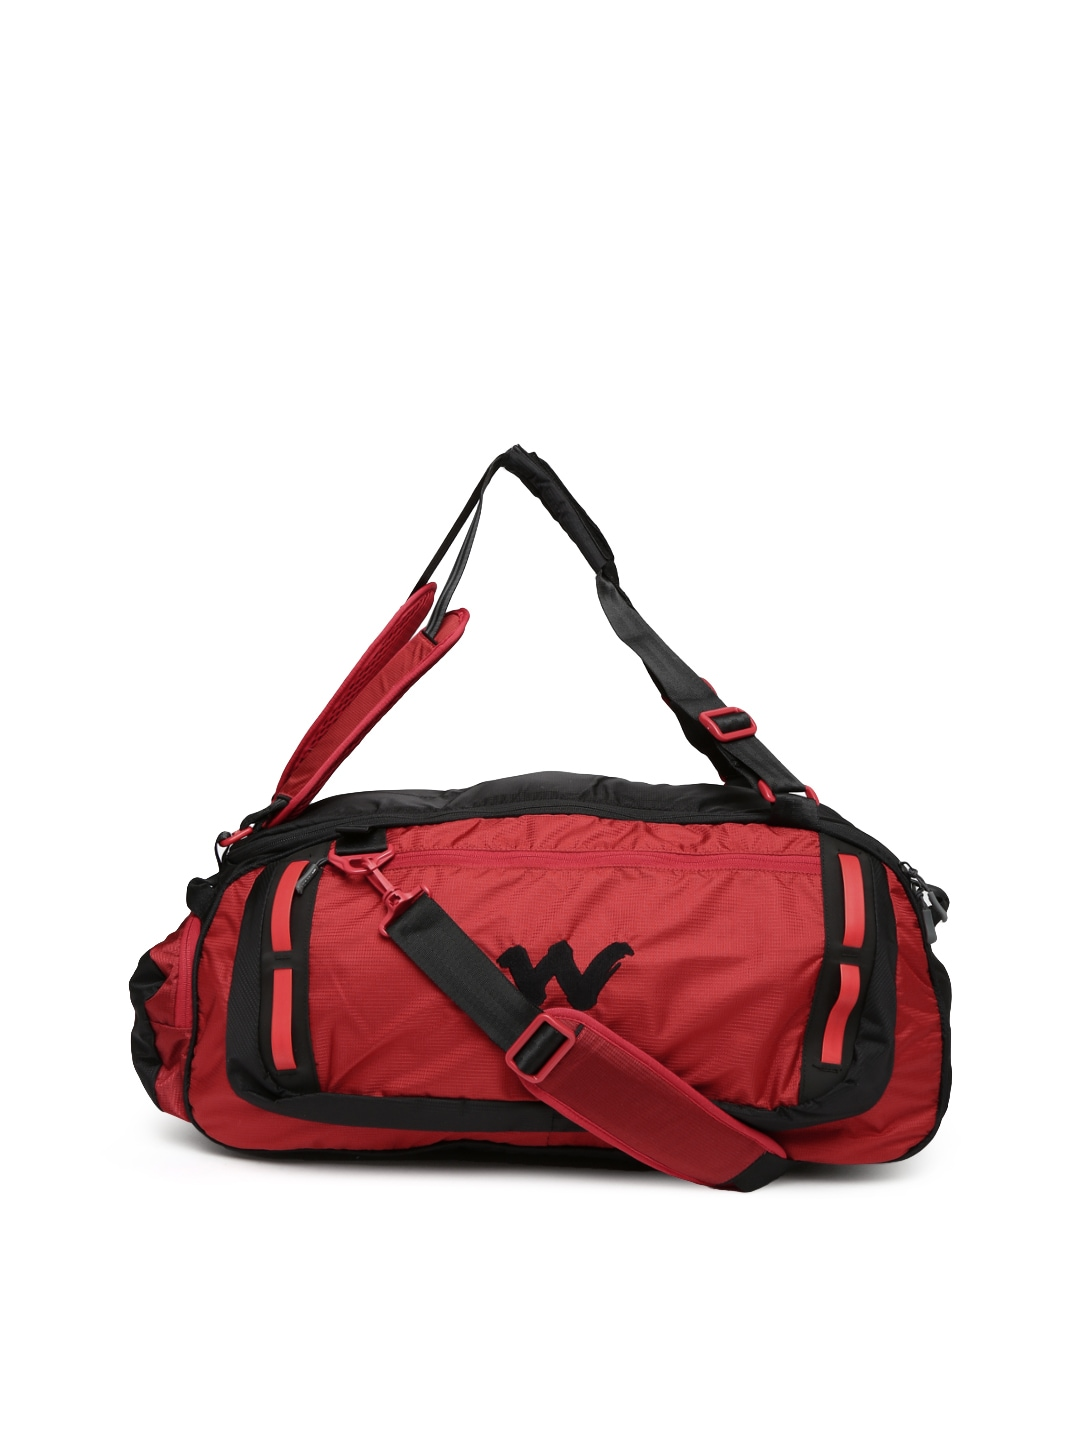 Wildcraft Duffel Bag - Buy Wildcraft Duffel Bag online in India 5f7b713a272de